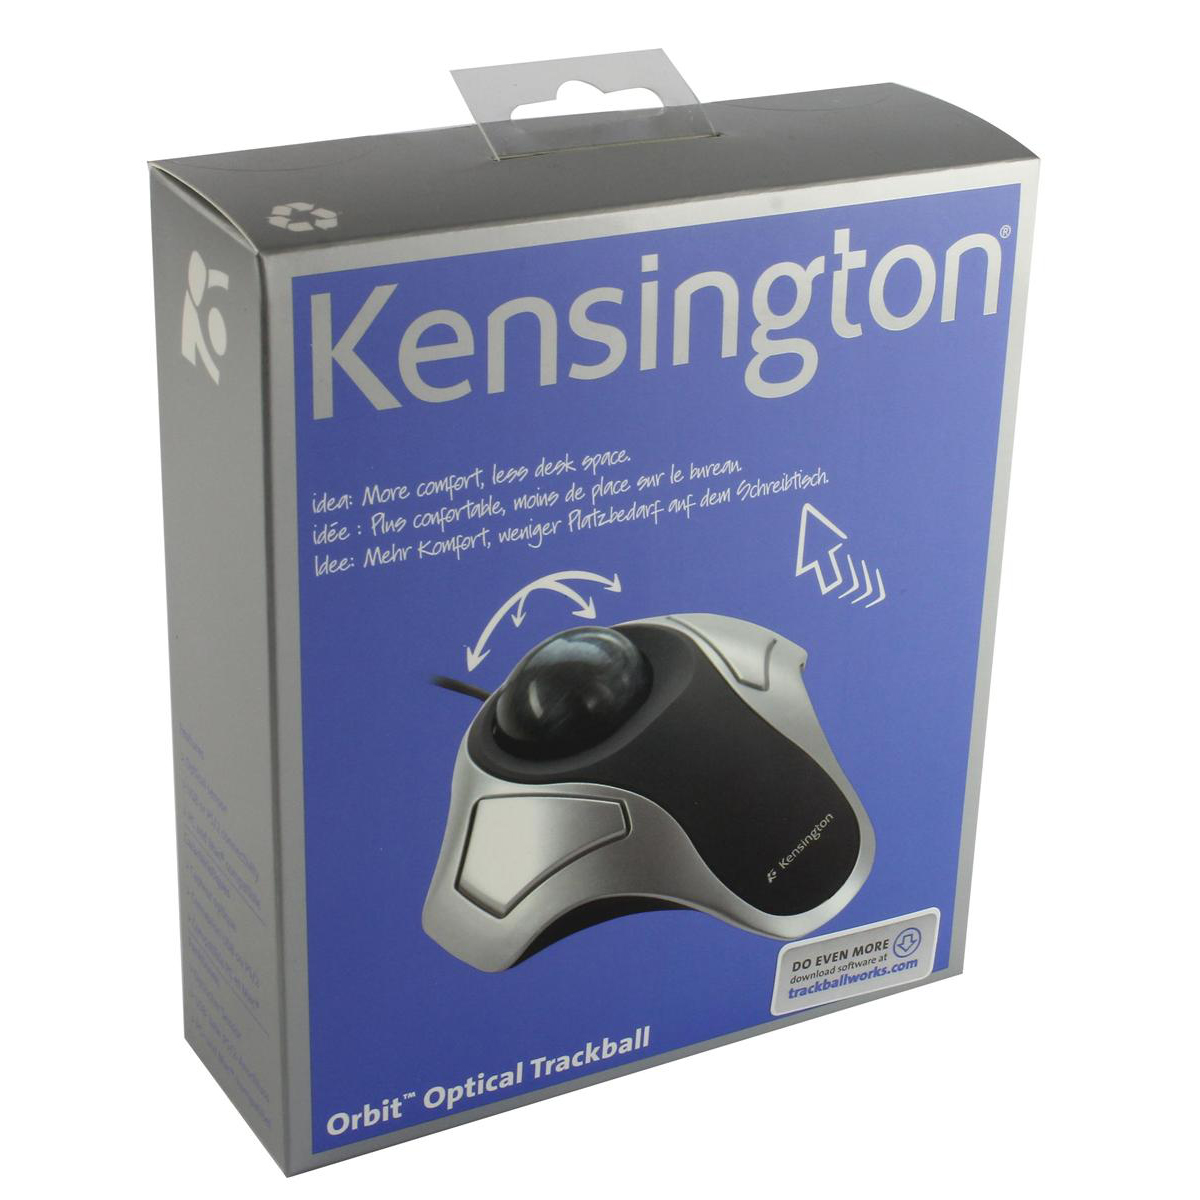 Kensington Orbit Elite Mouse Trackball Corded USB Both Handed Black/Silver Ref 64327EU